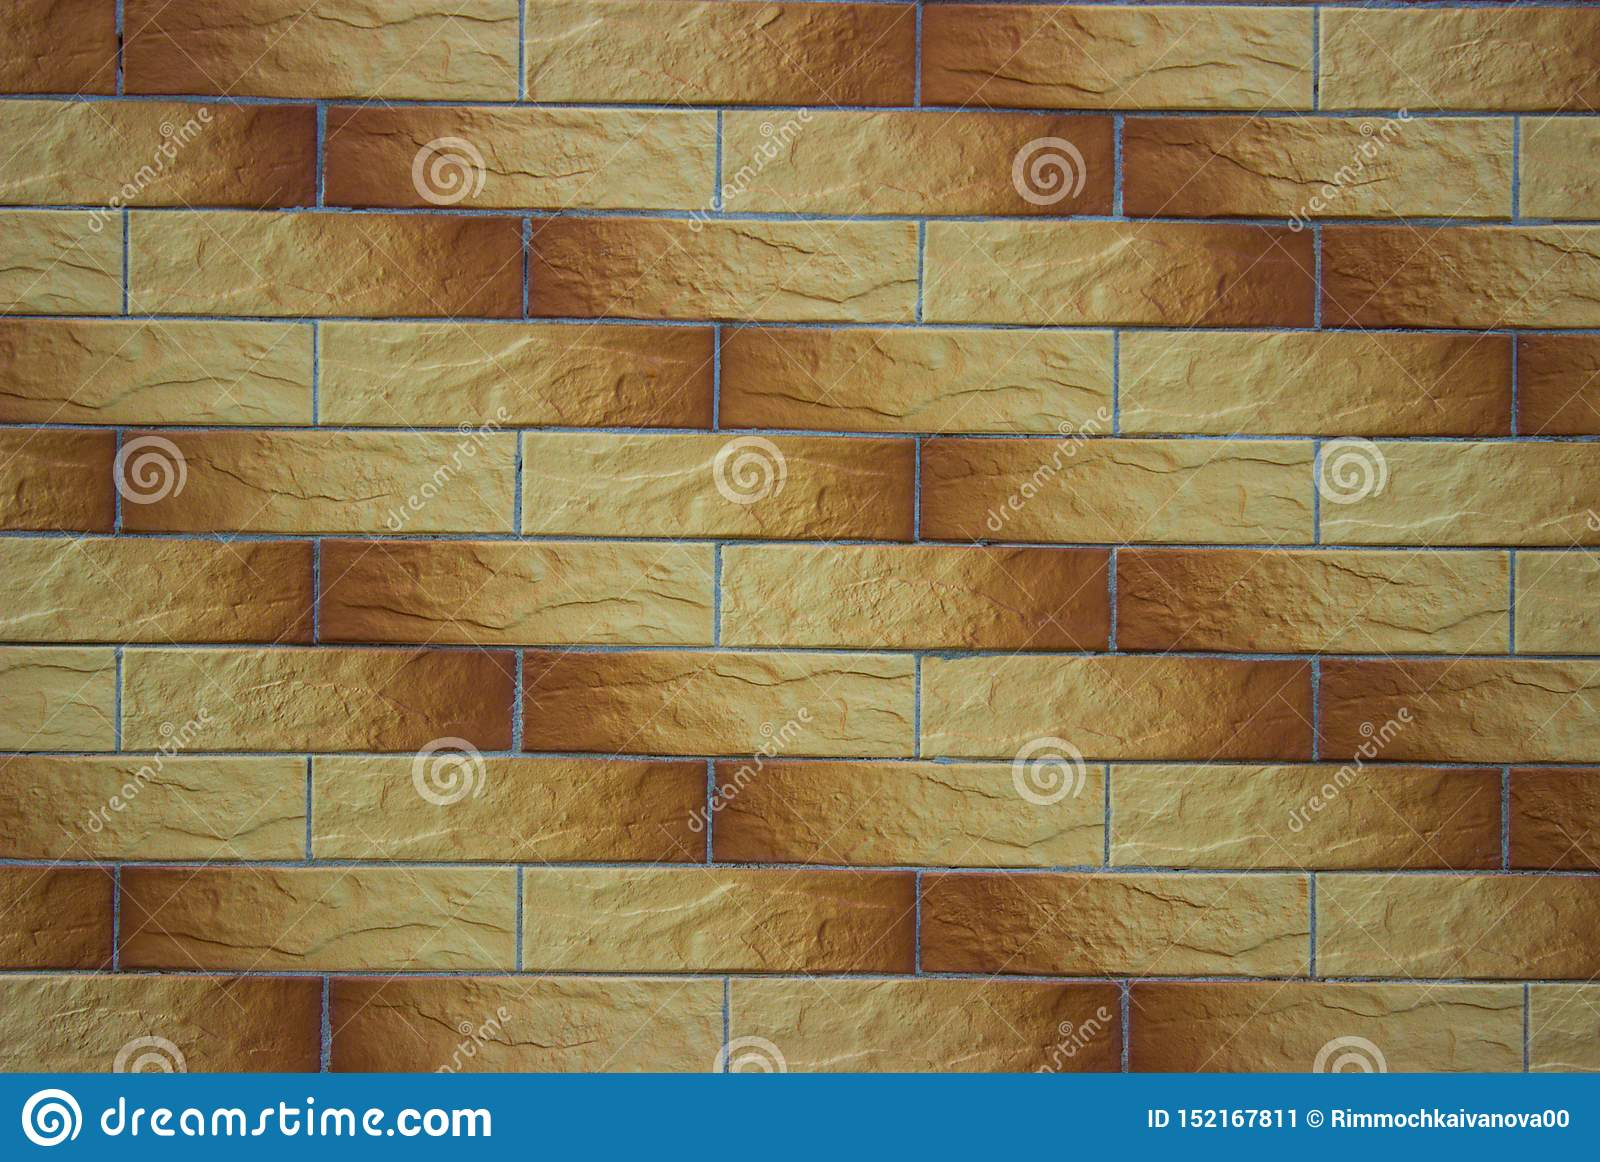 Decorative Brickwork Of Light And Dark Brown Shades Stock Image Image Of Solid Shade 152167811